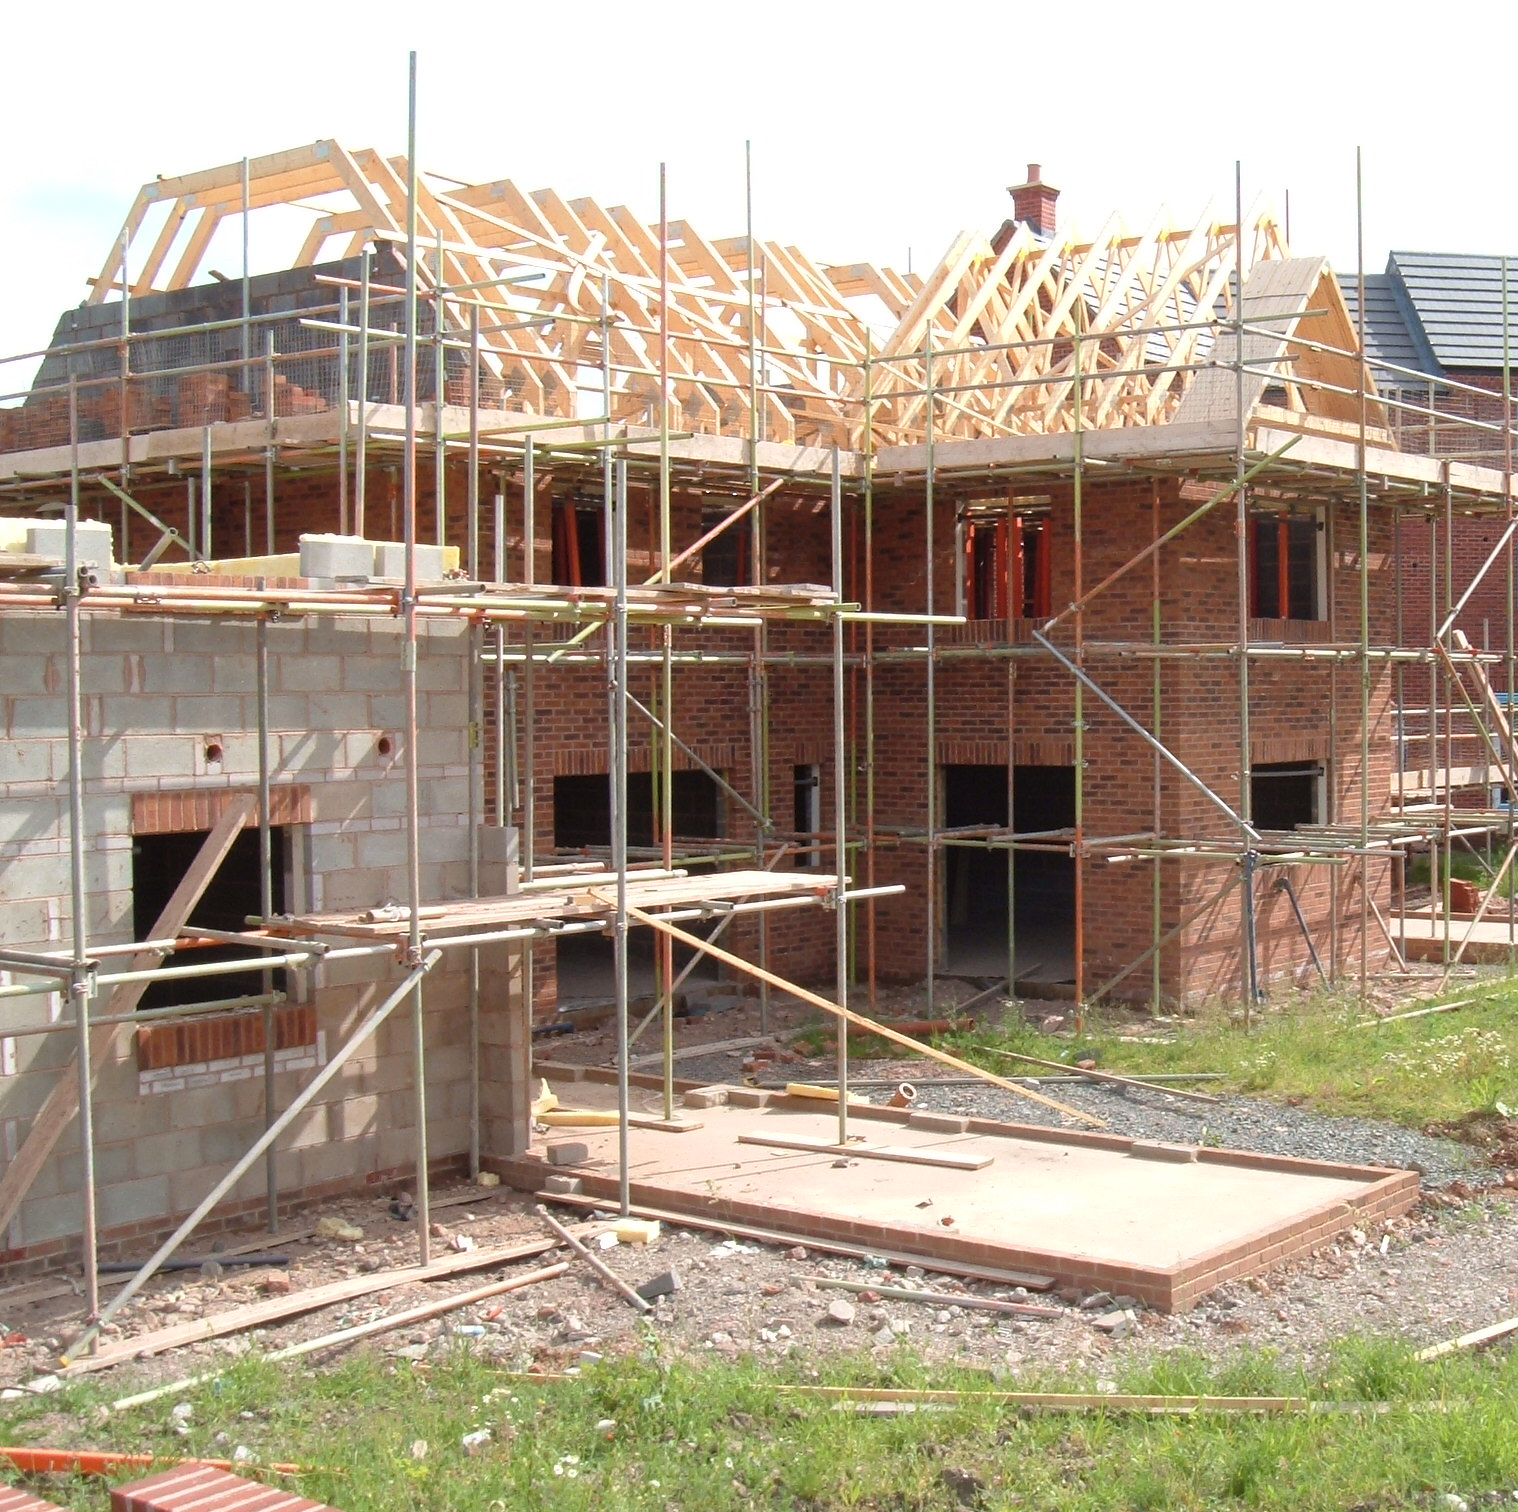 Building A House : Private sector drives growth across uk building